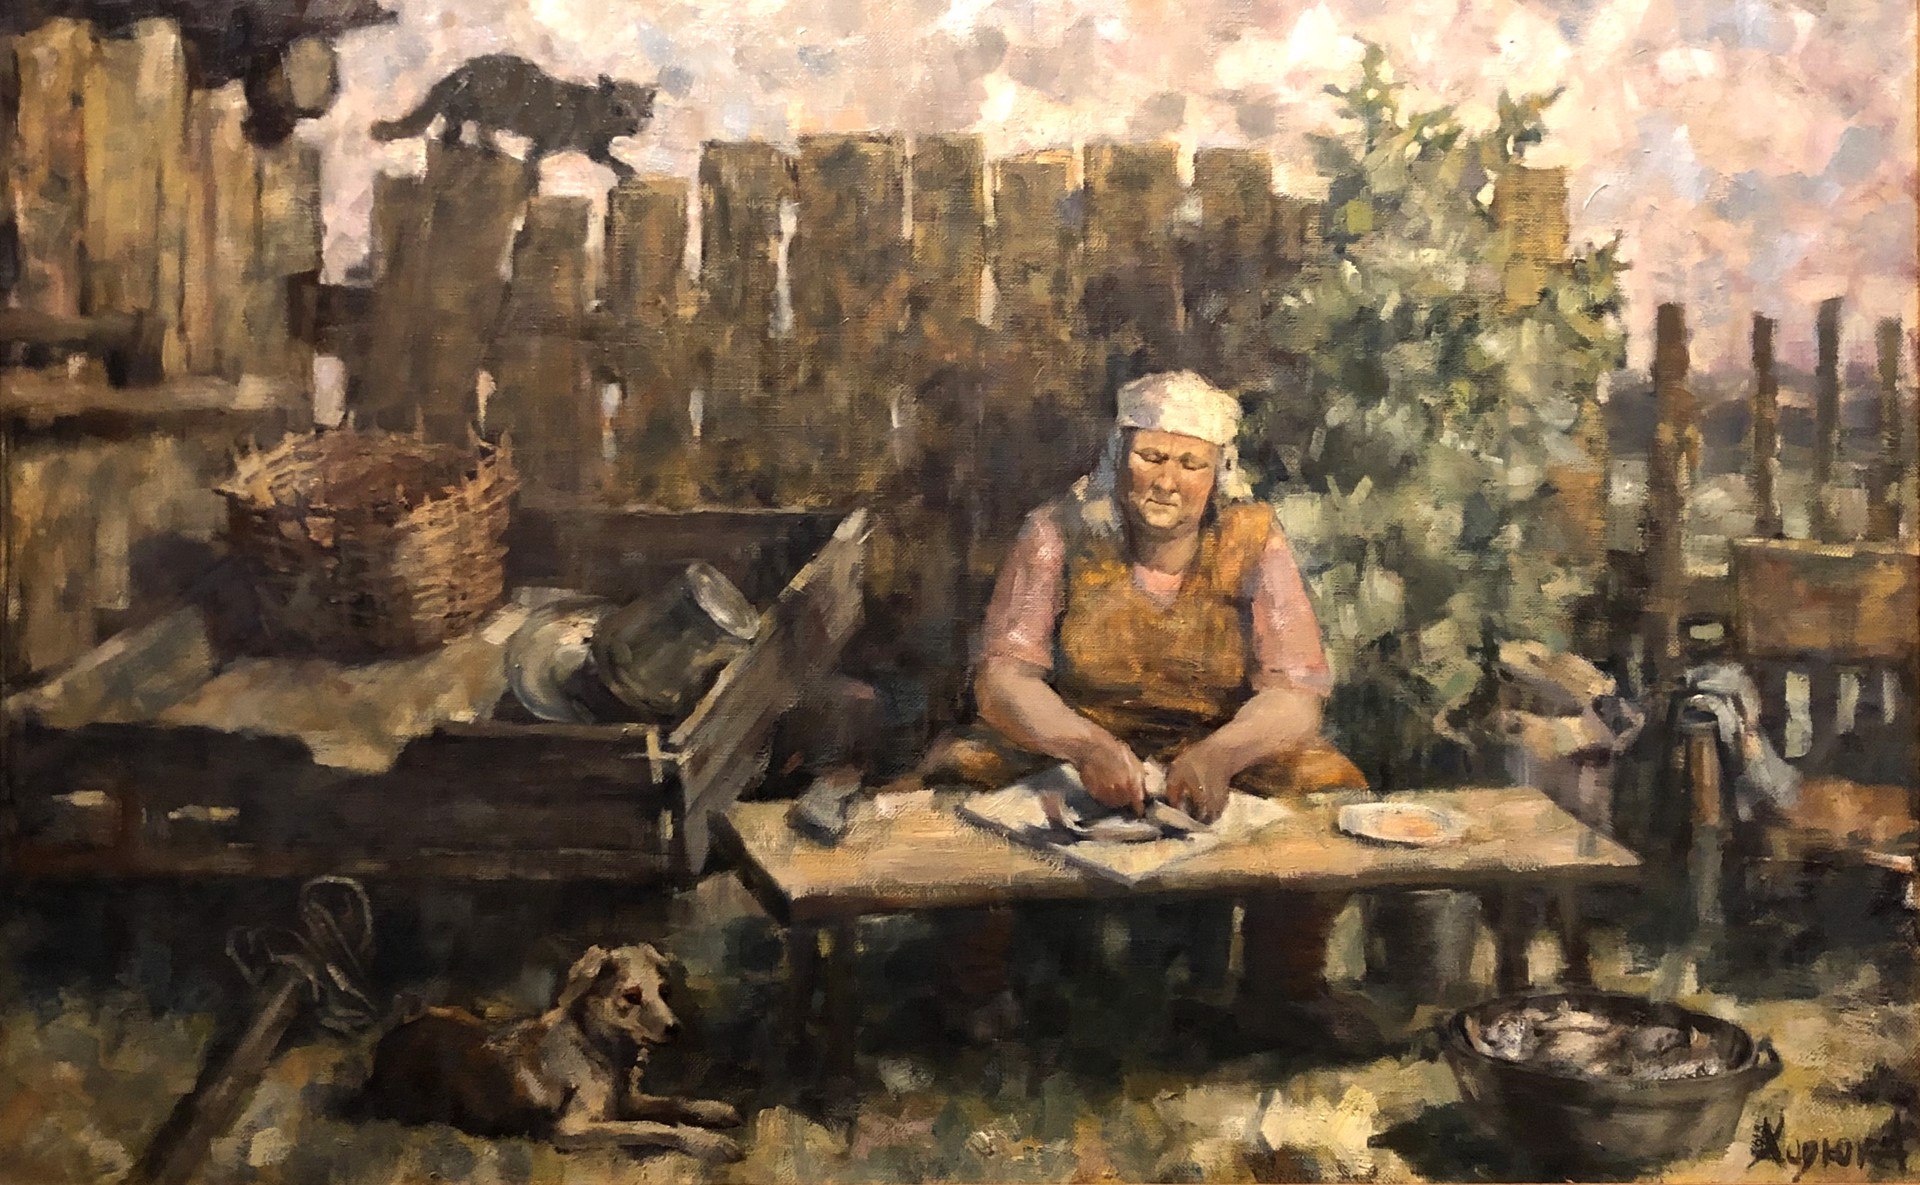 Alexander Petrovich Khoduk - Cleaning Fish by Russian Artists